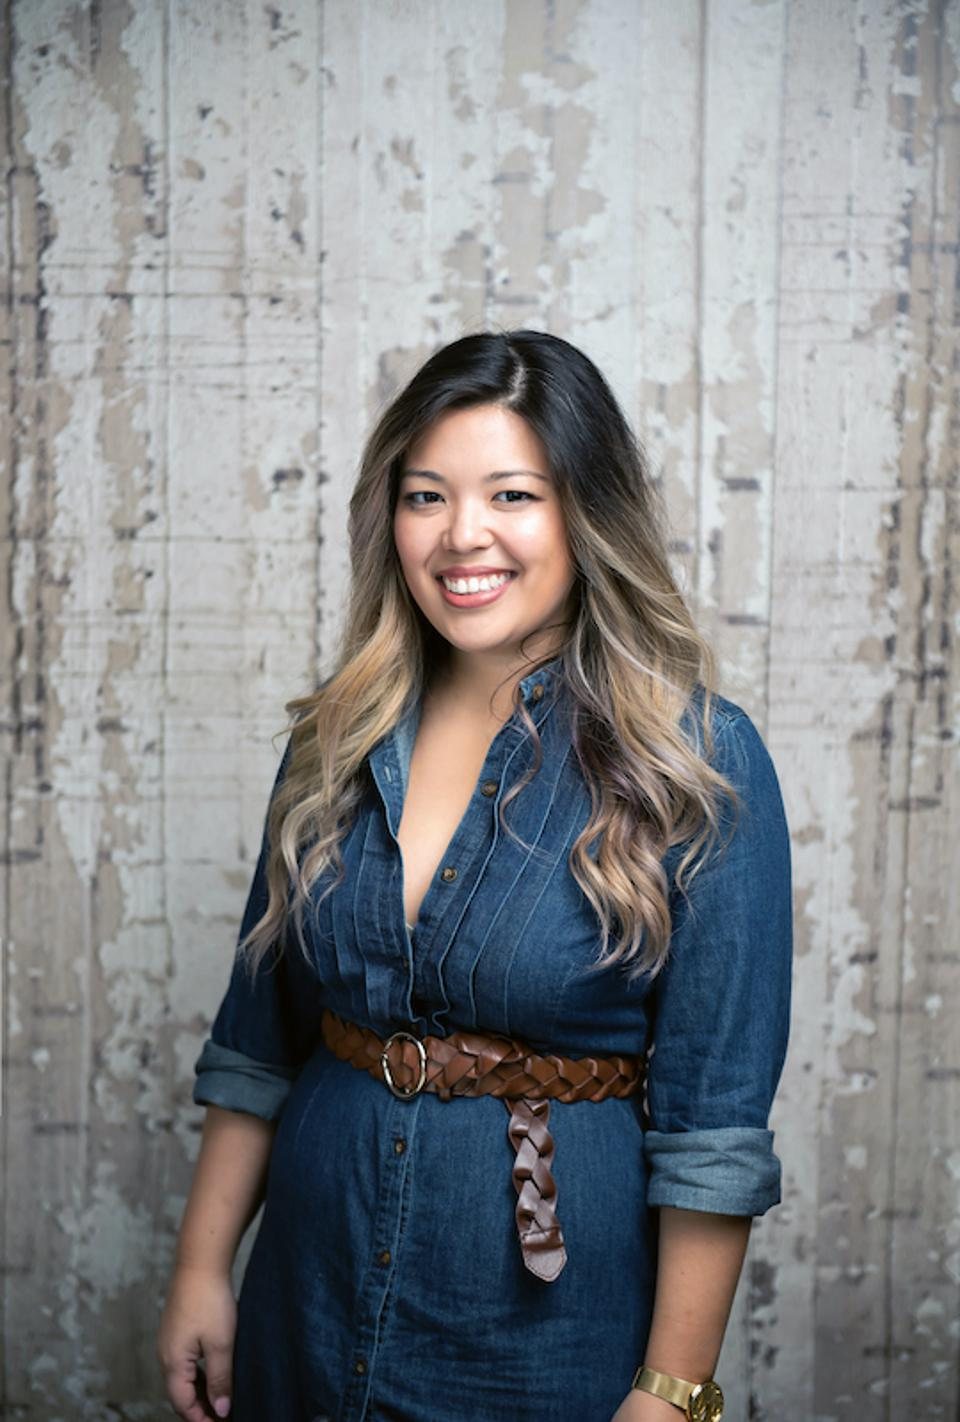 Ayeshah Abuelhiga founded the Mason Dixie Biscuit Company in 2014 to make the clean-ingredient Southern cooking that she grew up with accessible to more Americans.